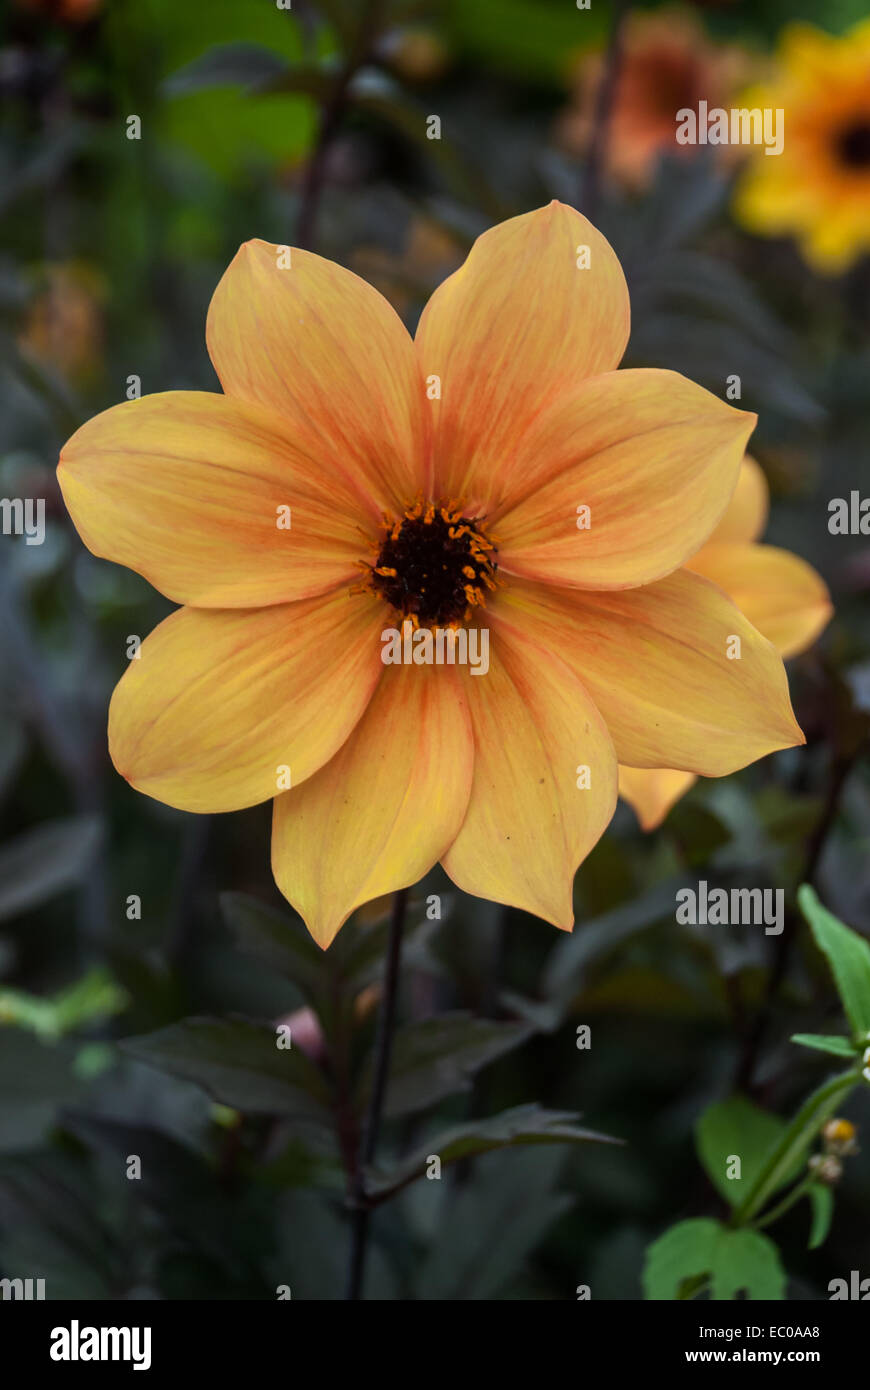 A Soft Yellow And Orange Flower With Brown Center Stock Photo